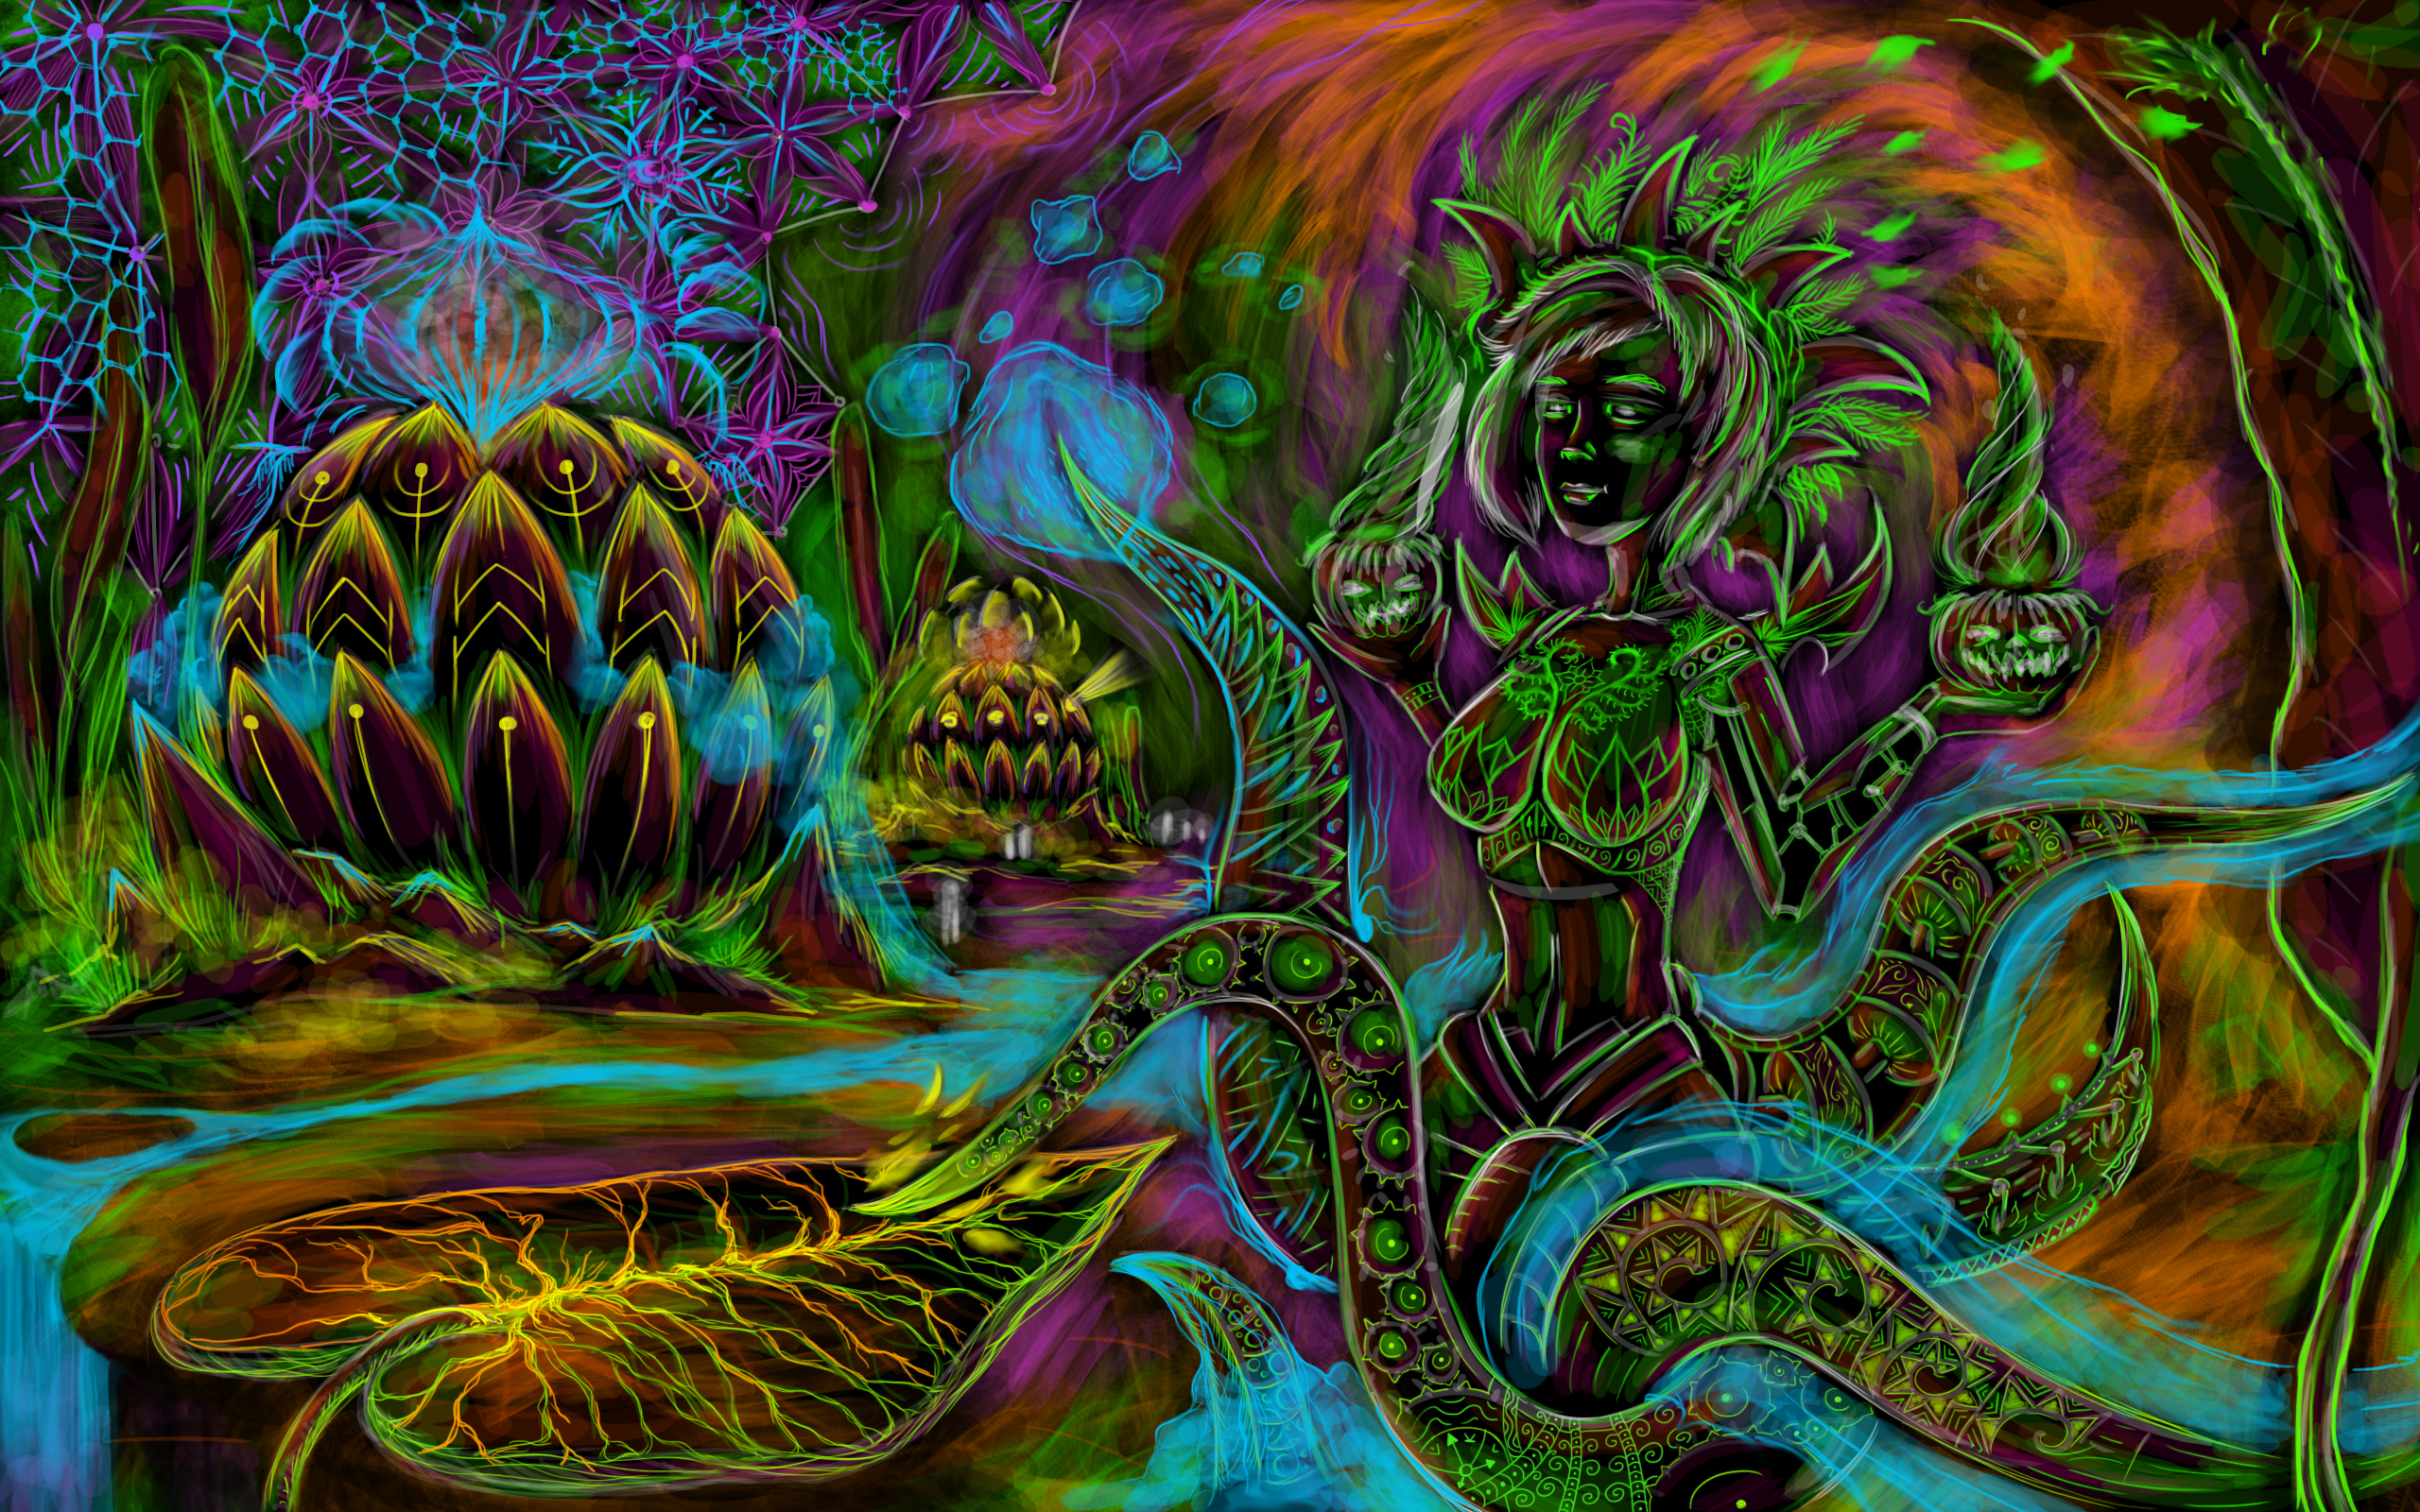 Cyber octopus free psychedelic art wallpaper andrei verner - Trippy nature wallpaper ...